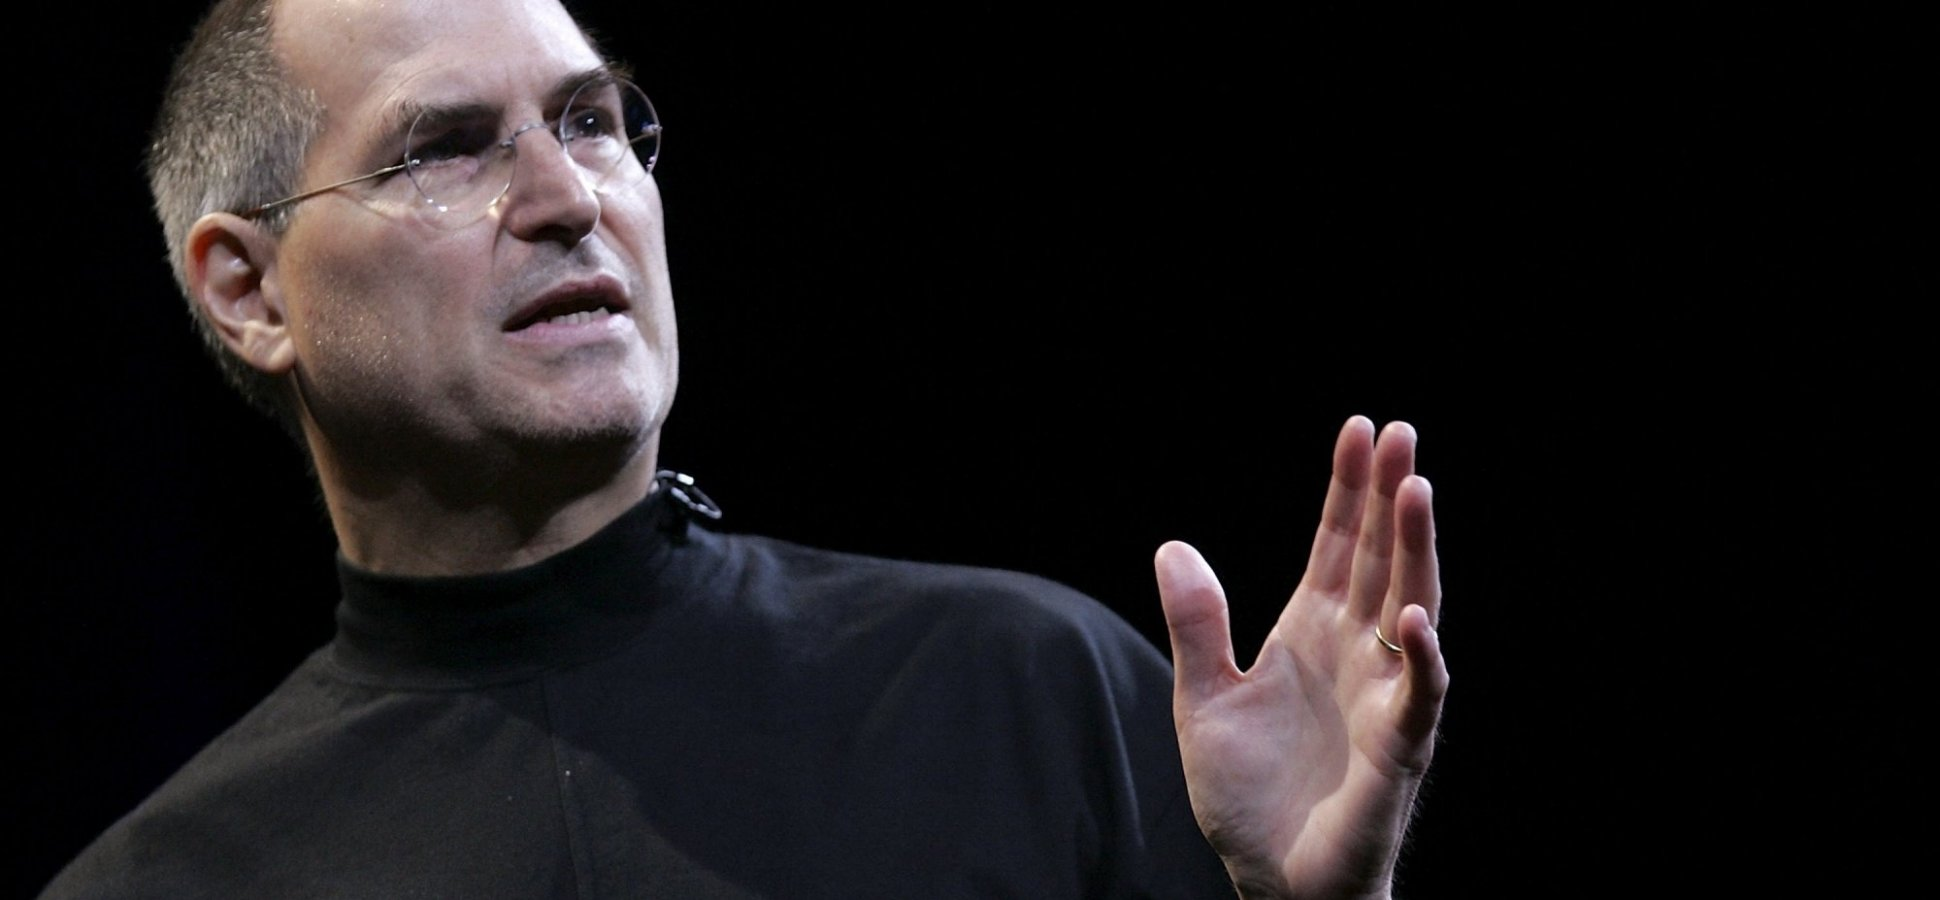 Steve Jobs Said Goodbye to Micromanagement. Now His Company Could Be Worth a Trillion